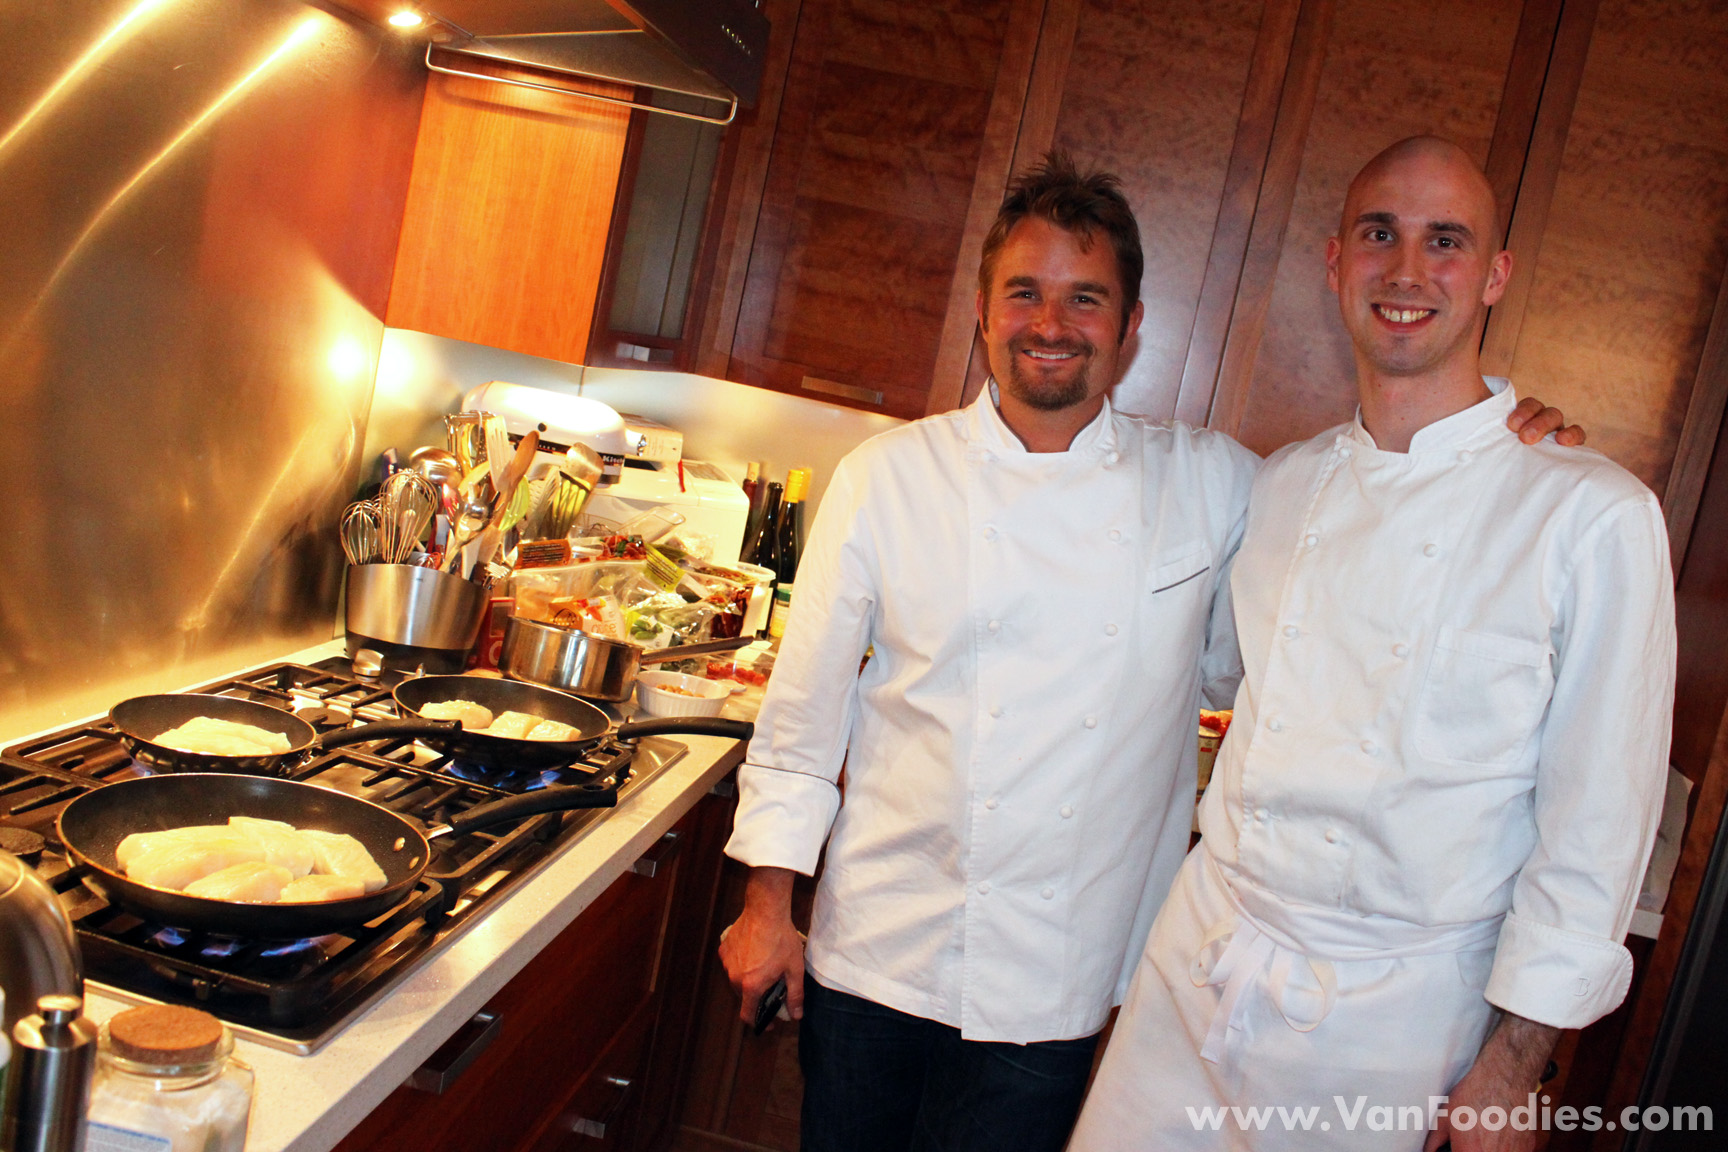 Learn: City Gas Cooking Classes With celebrity chefs